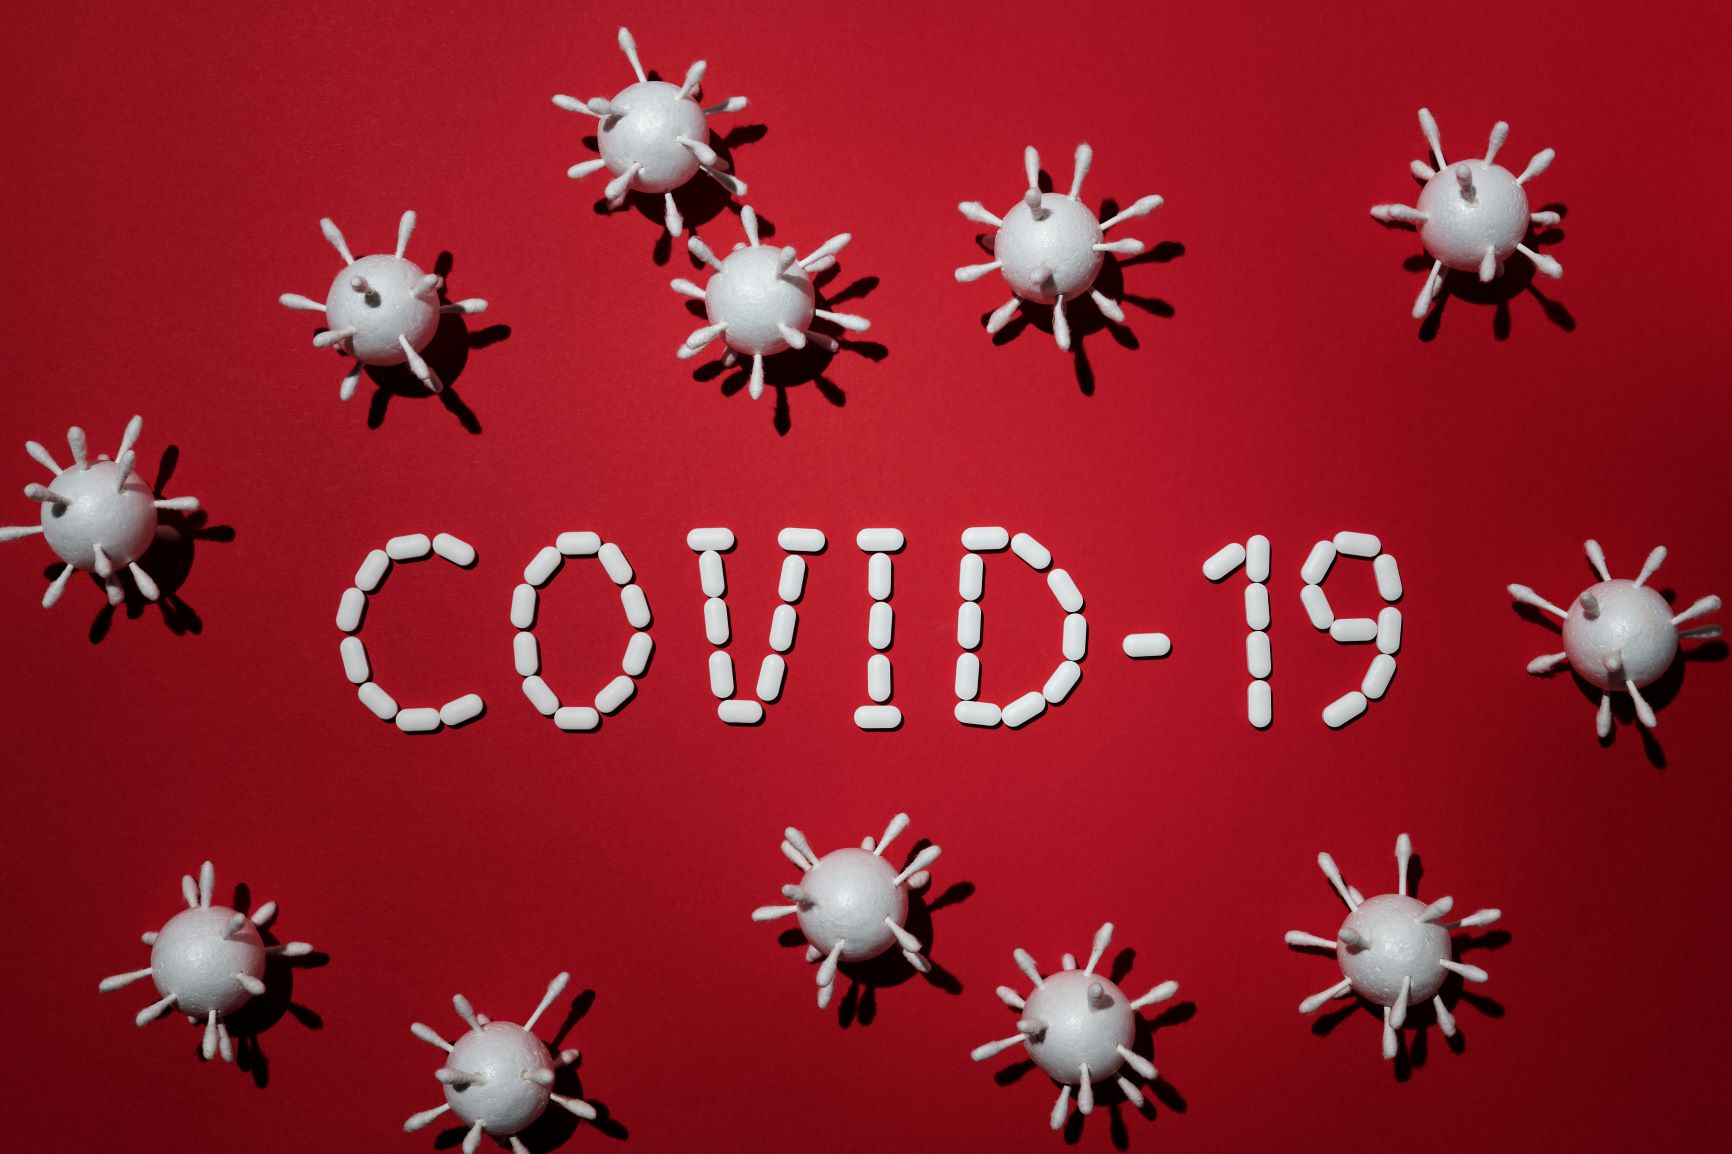 Canva – Concept Of Covid-19 In Red Background 2 Photo by Edward Jenner